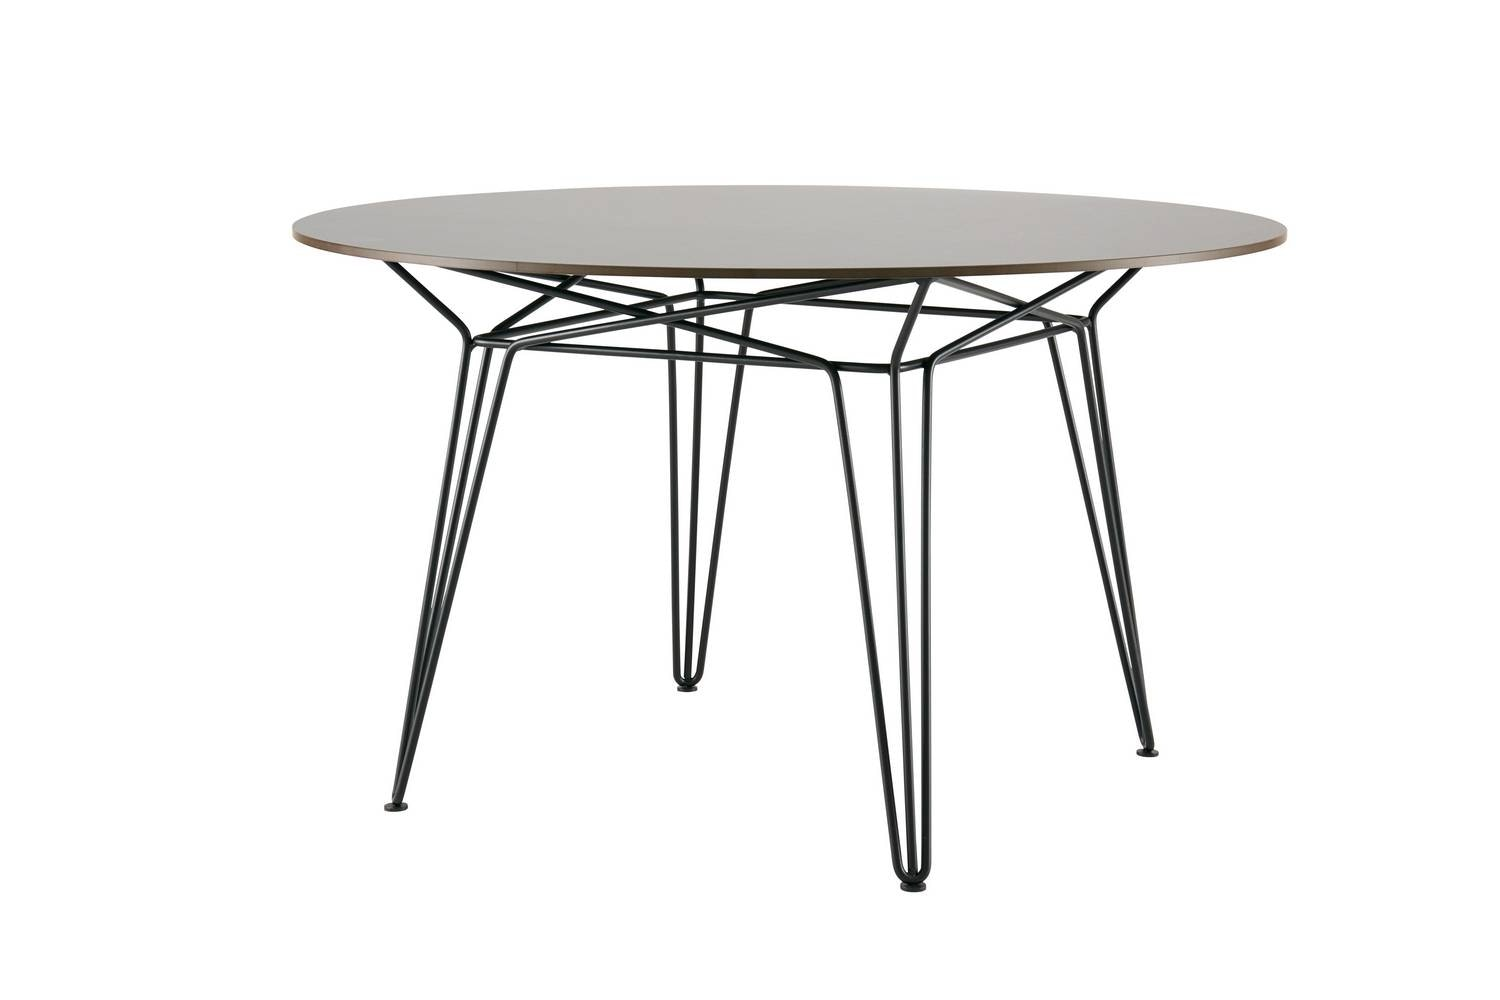 Parisi Table by Tom Fereday